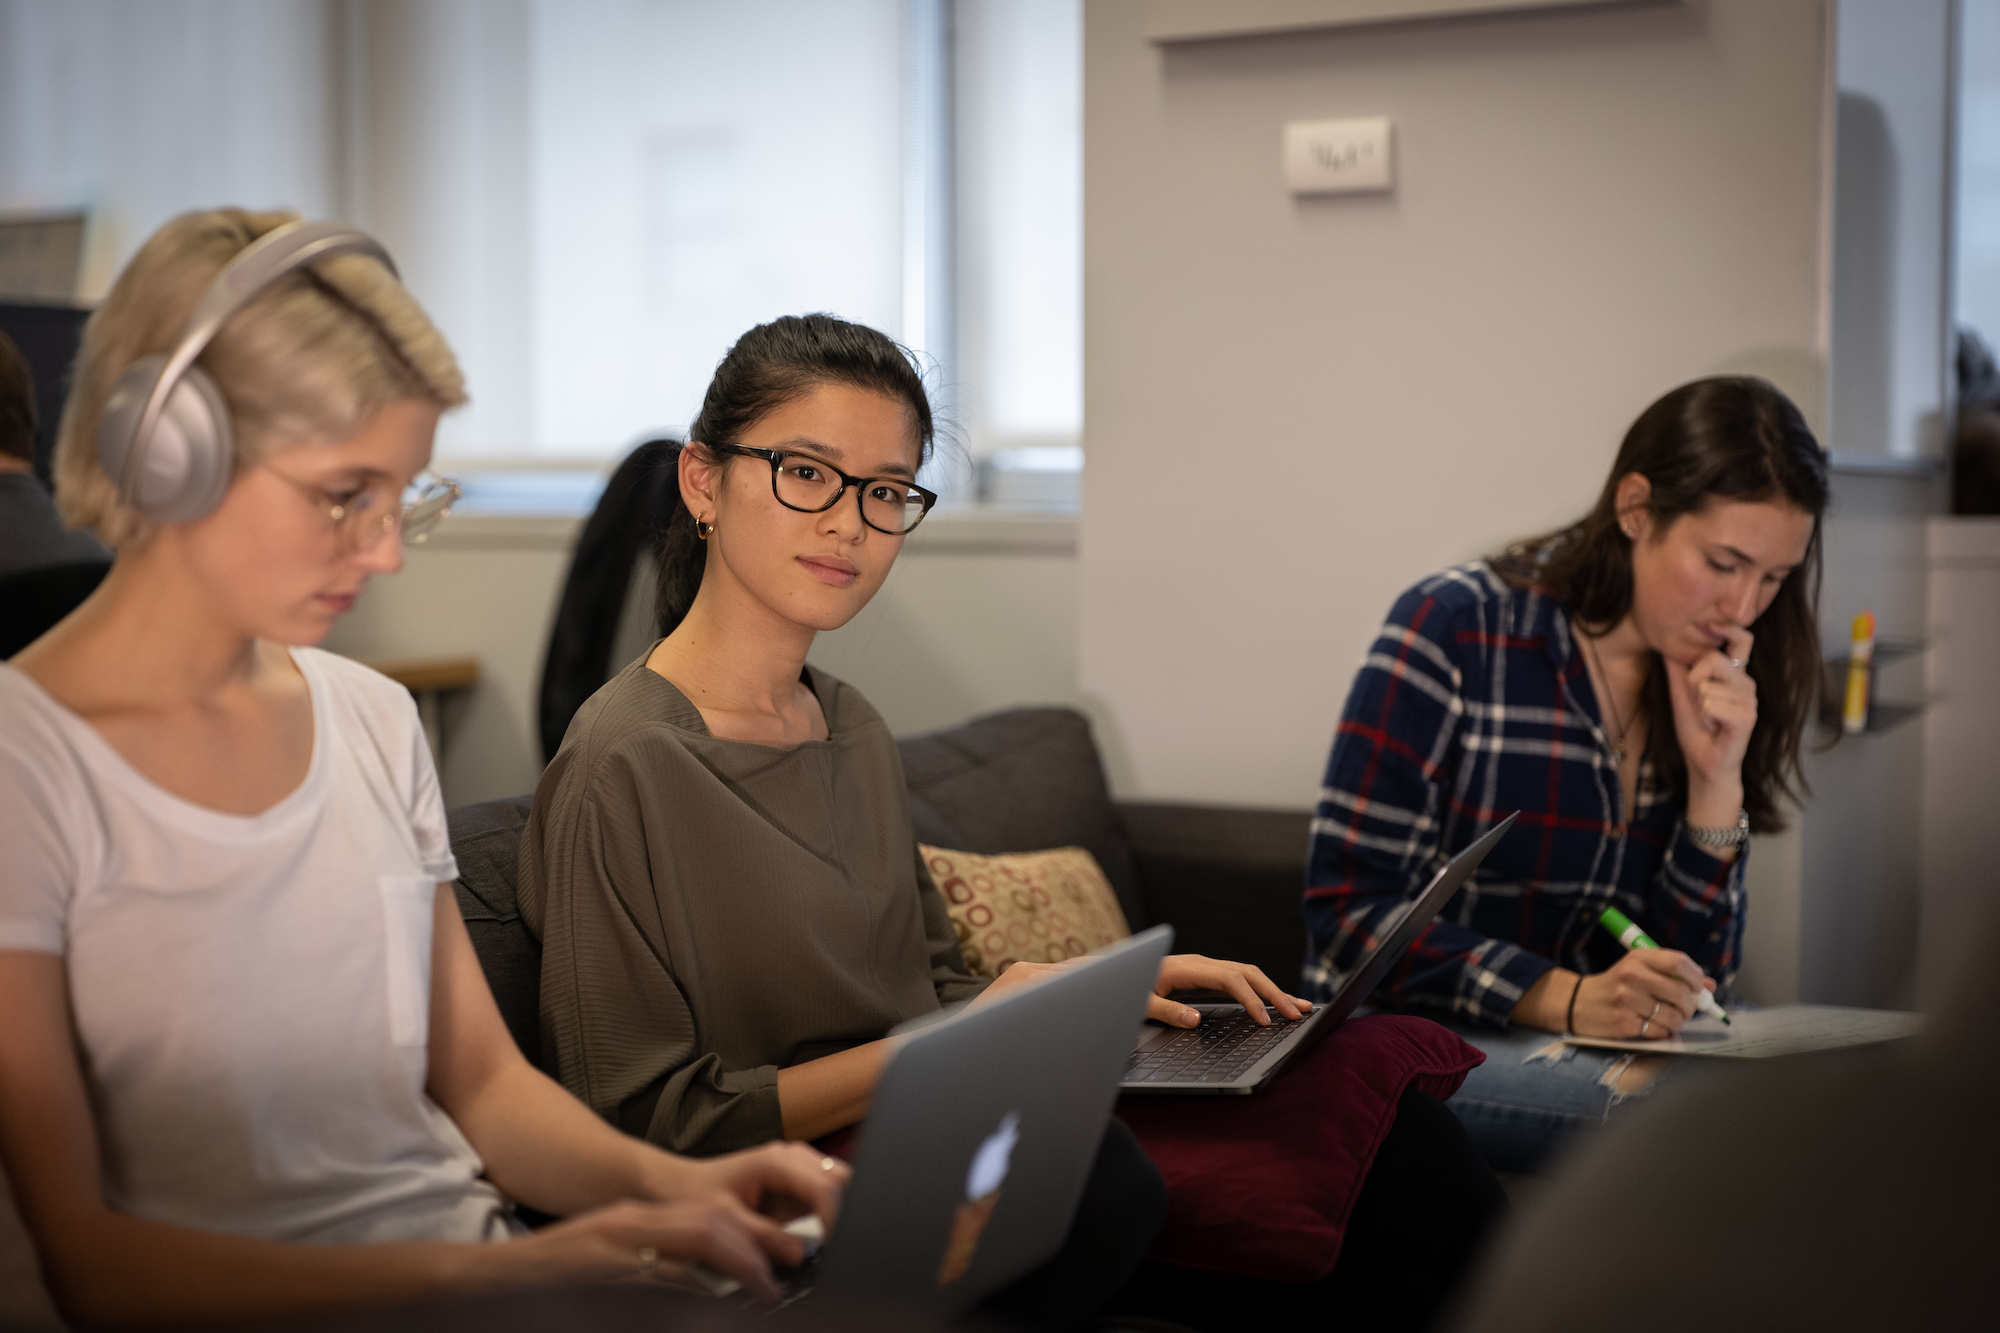 Women collaborating on a project